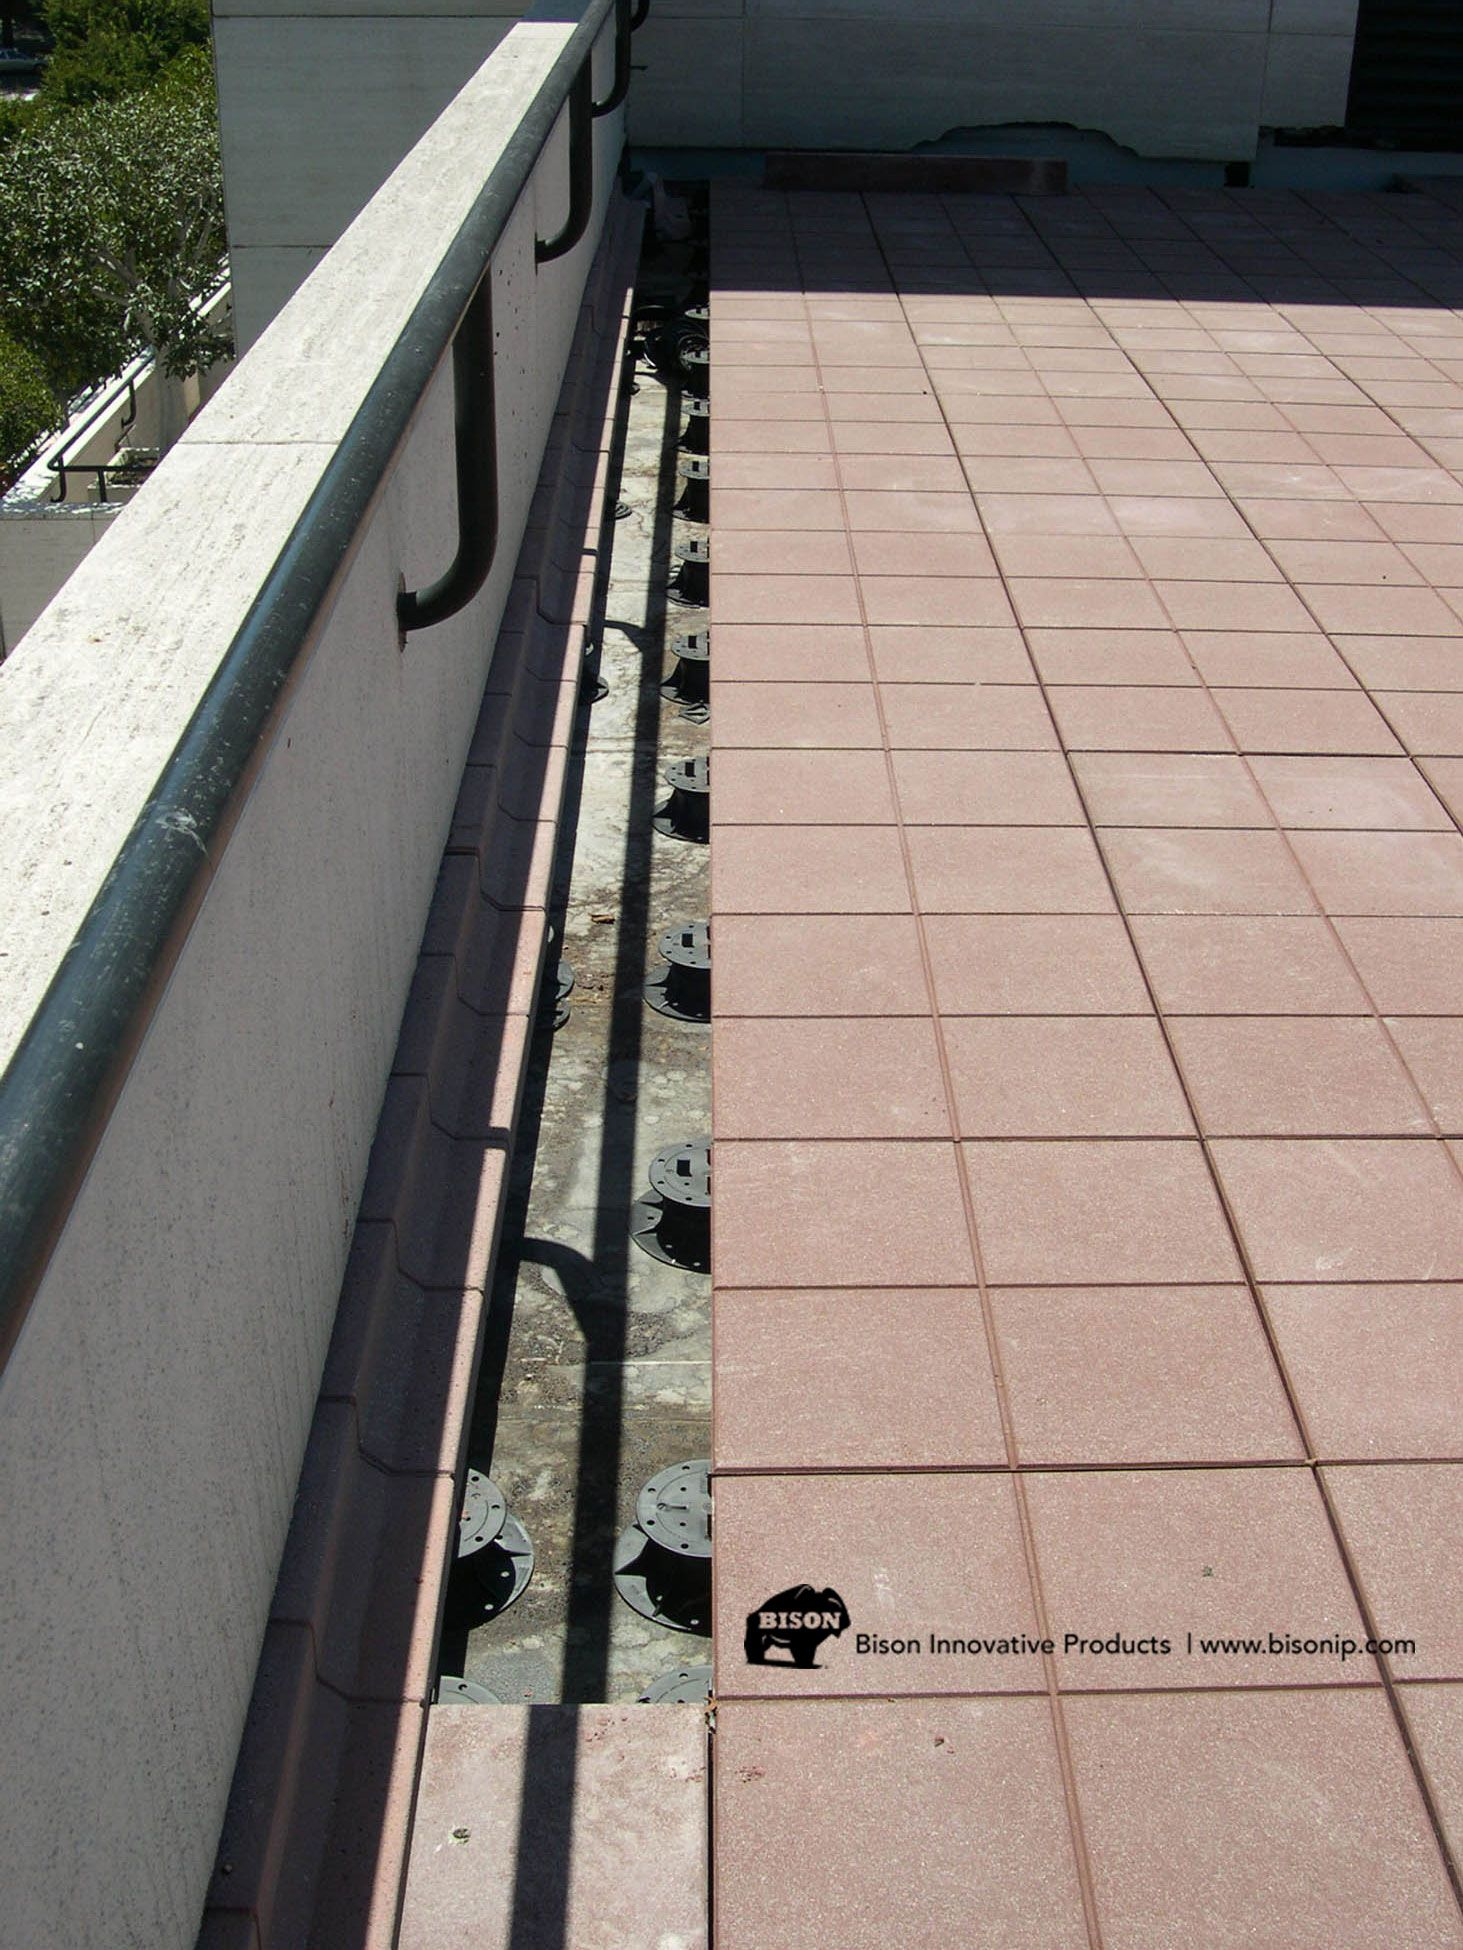 How To Install Paver Tiles Around A Perimeter Using Bison Deck Supports And Concrete Pavers